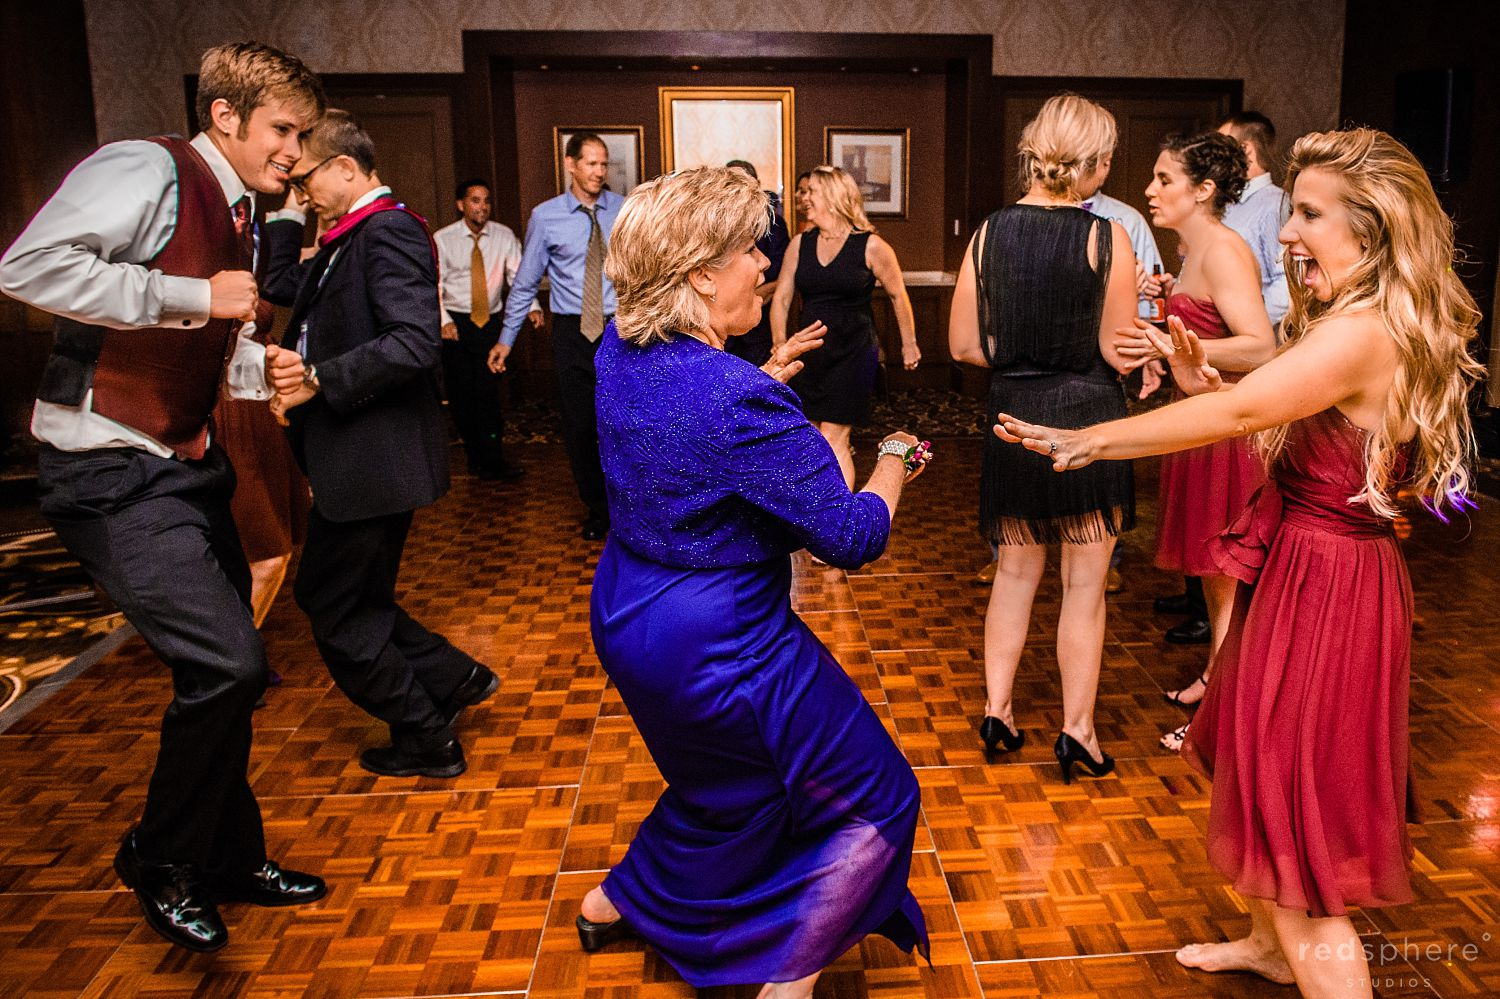 Family Members Dance Together at The Inn at Spanish Bay Wedding Reception